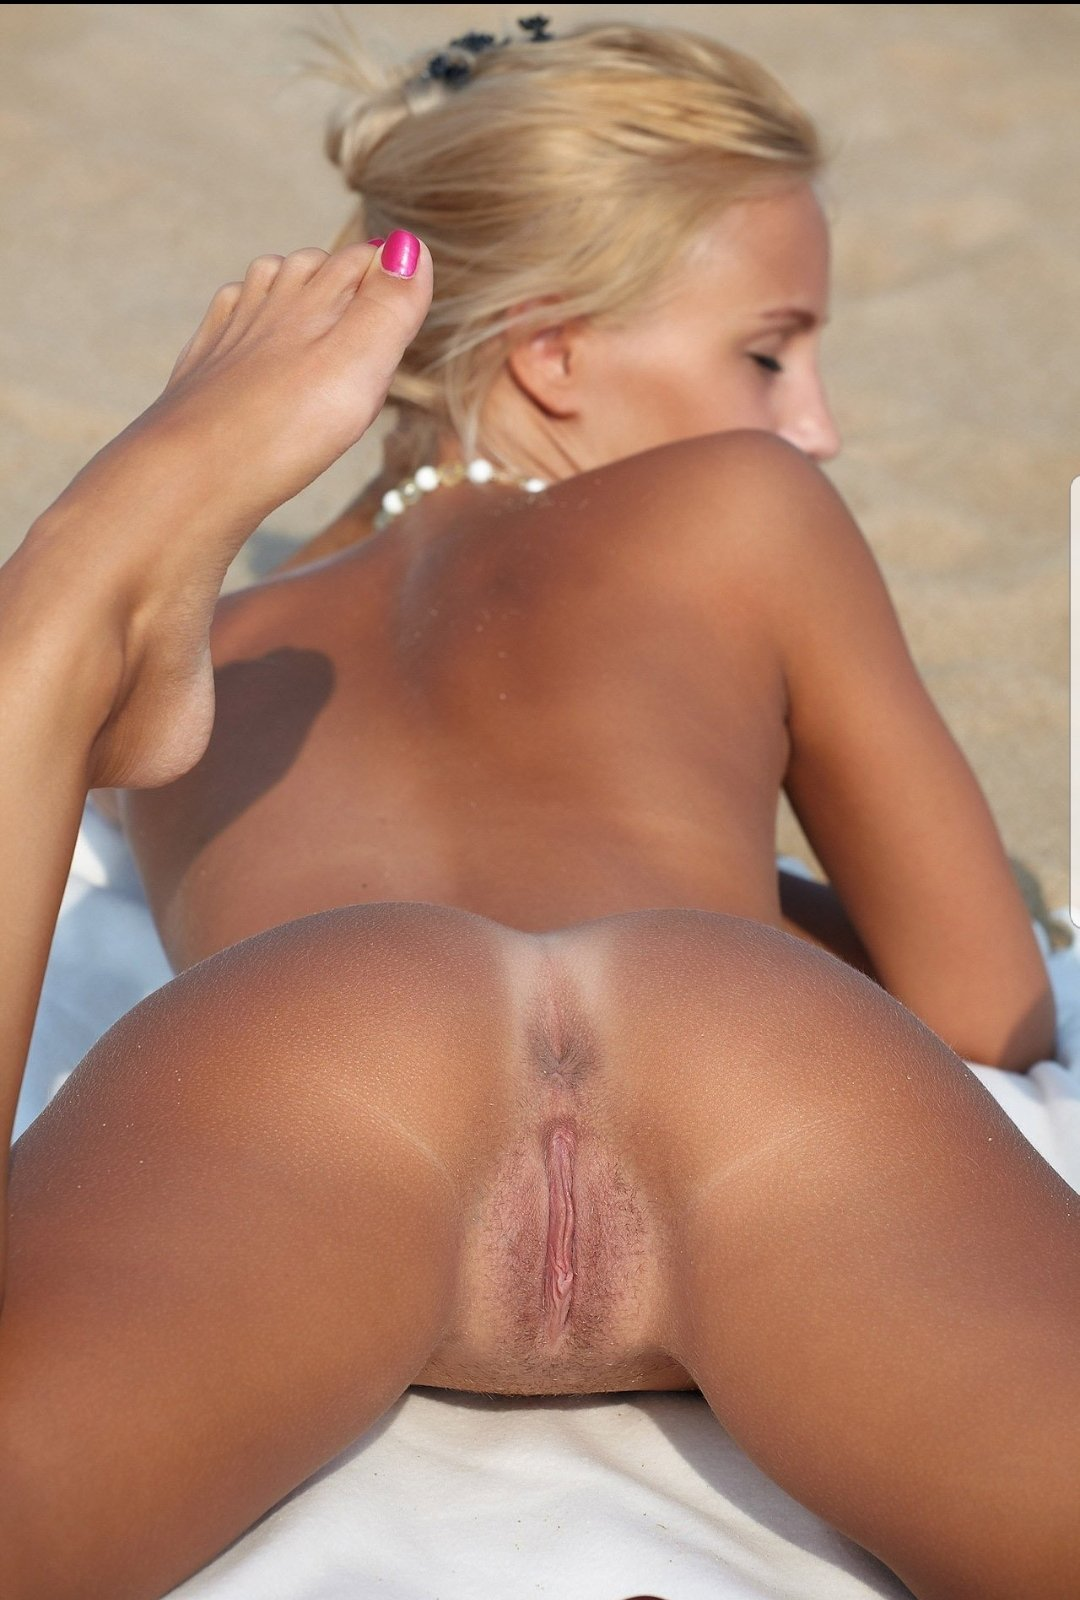 Girls Flash Pussy The Beach